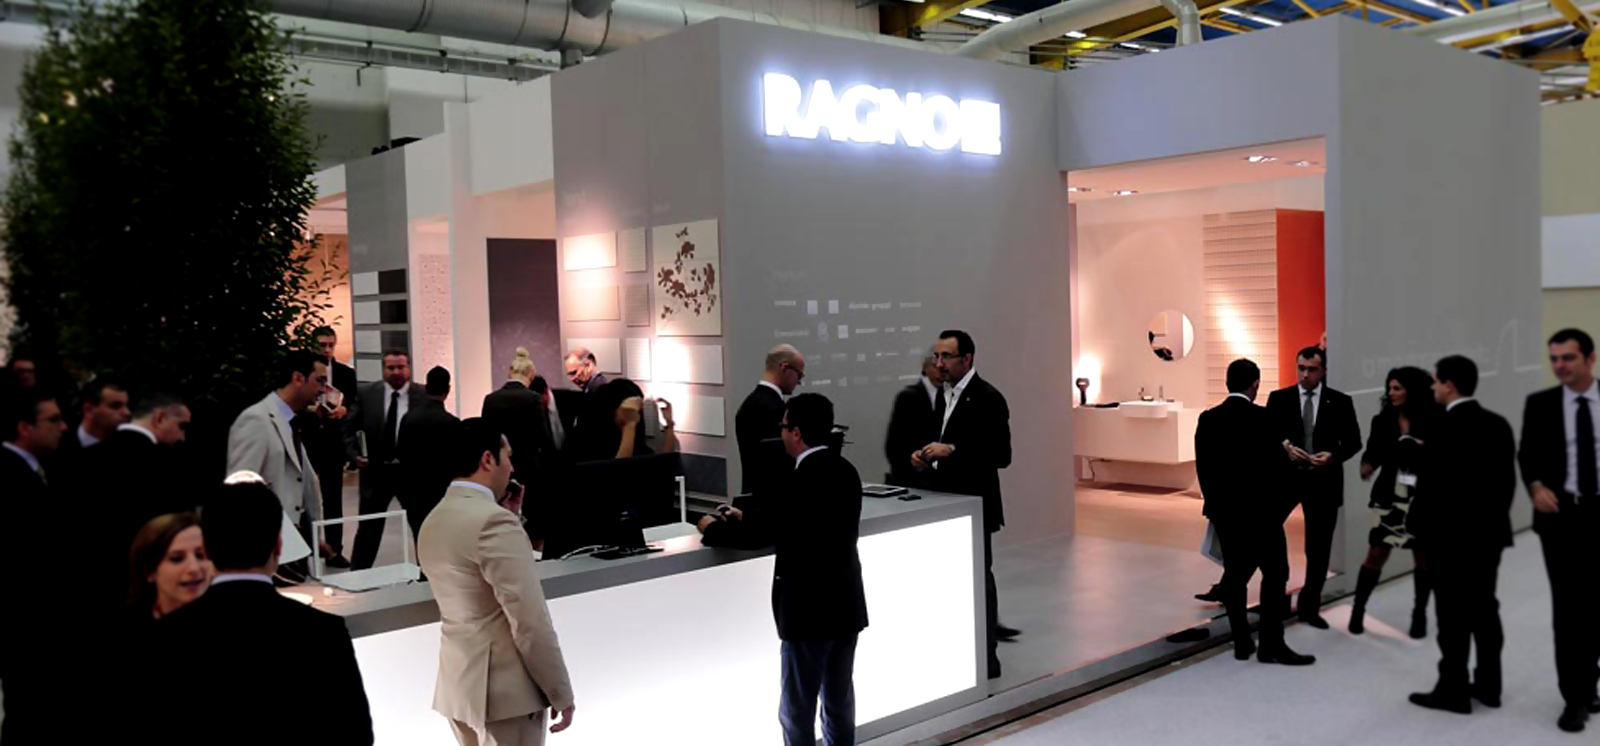 Cersaie 2012 - Ragno stands: lots of new products and masses of visitors!